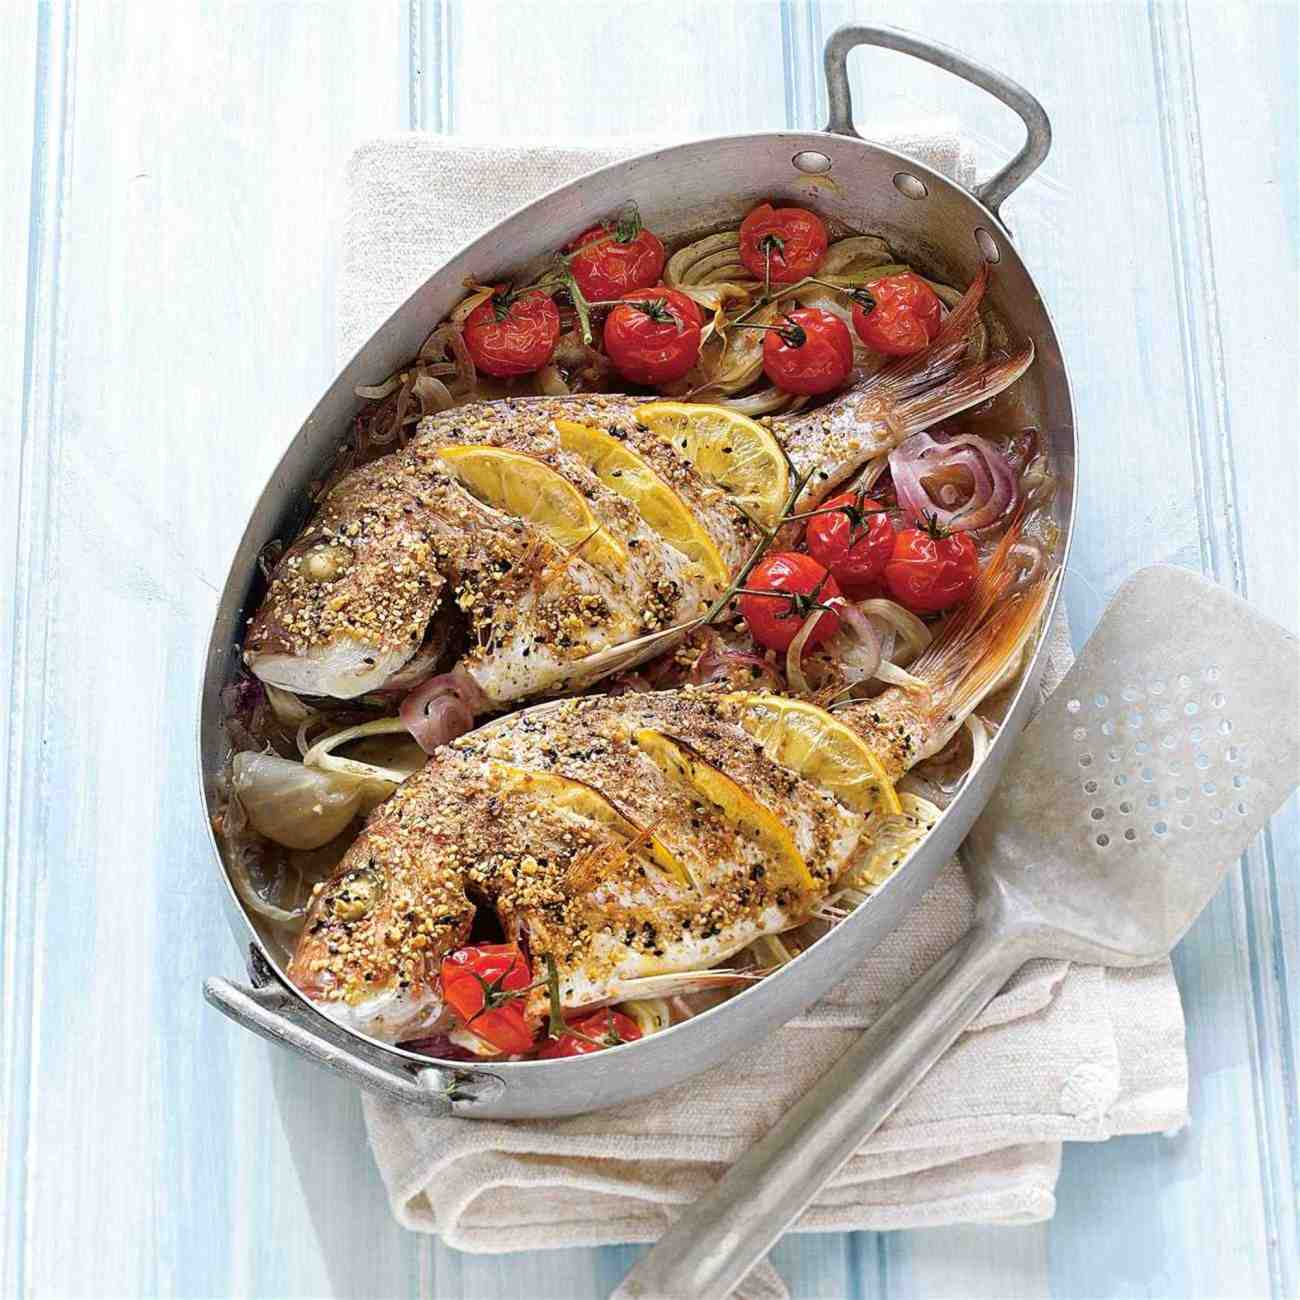 Lunch ideas recipes woolworths for Fish meal ideas